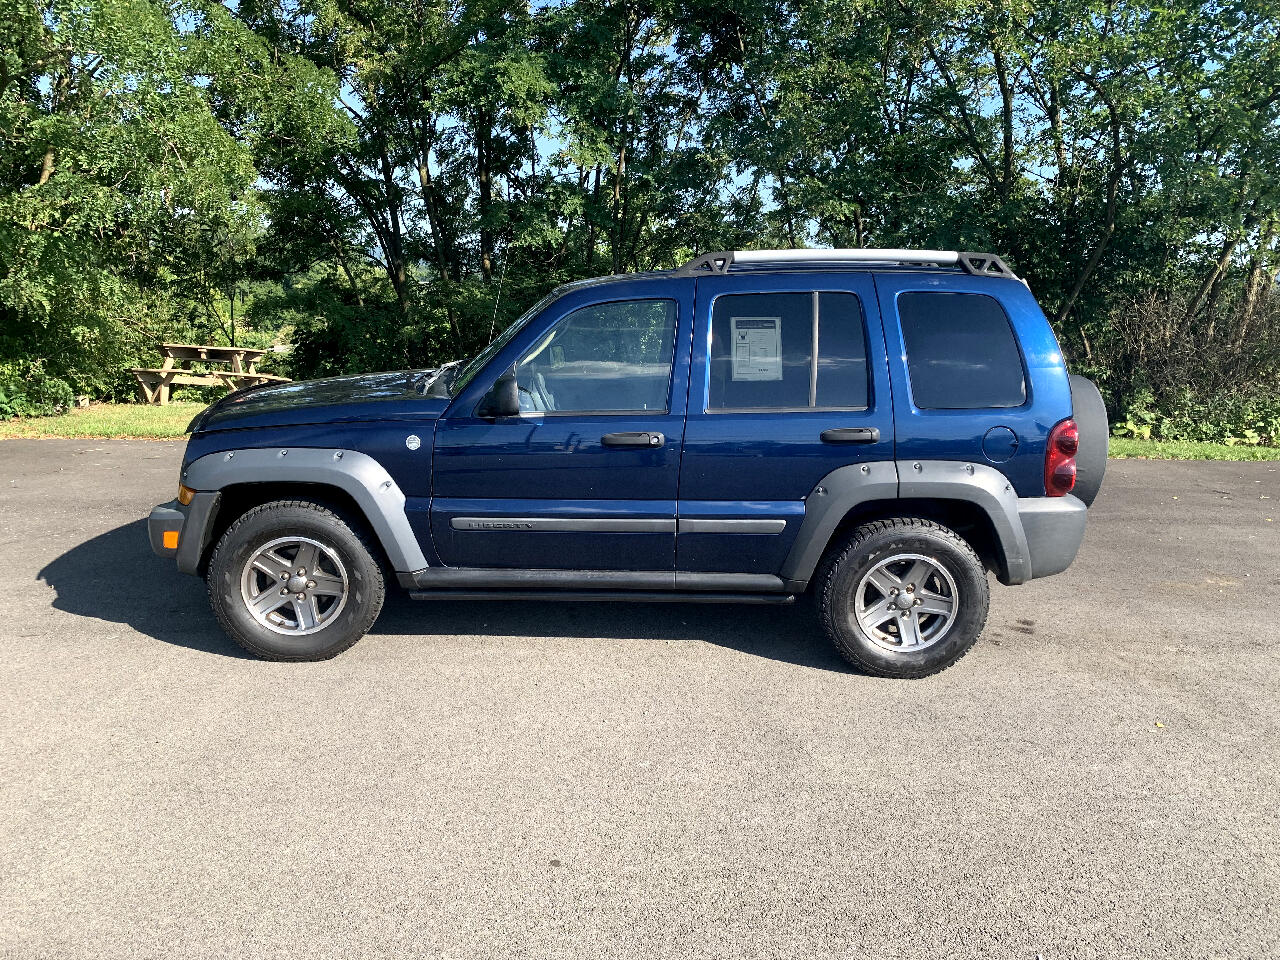 Jeep Liberty 4dr Renegade 4WD 2005